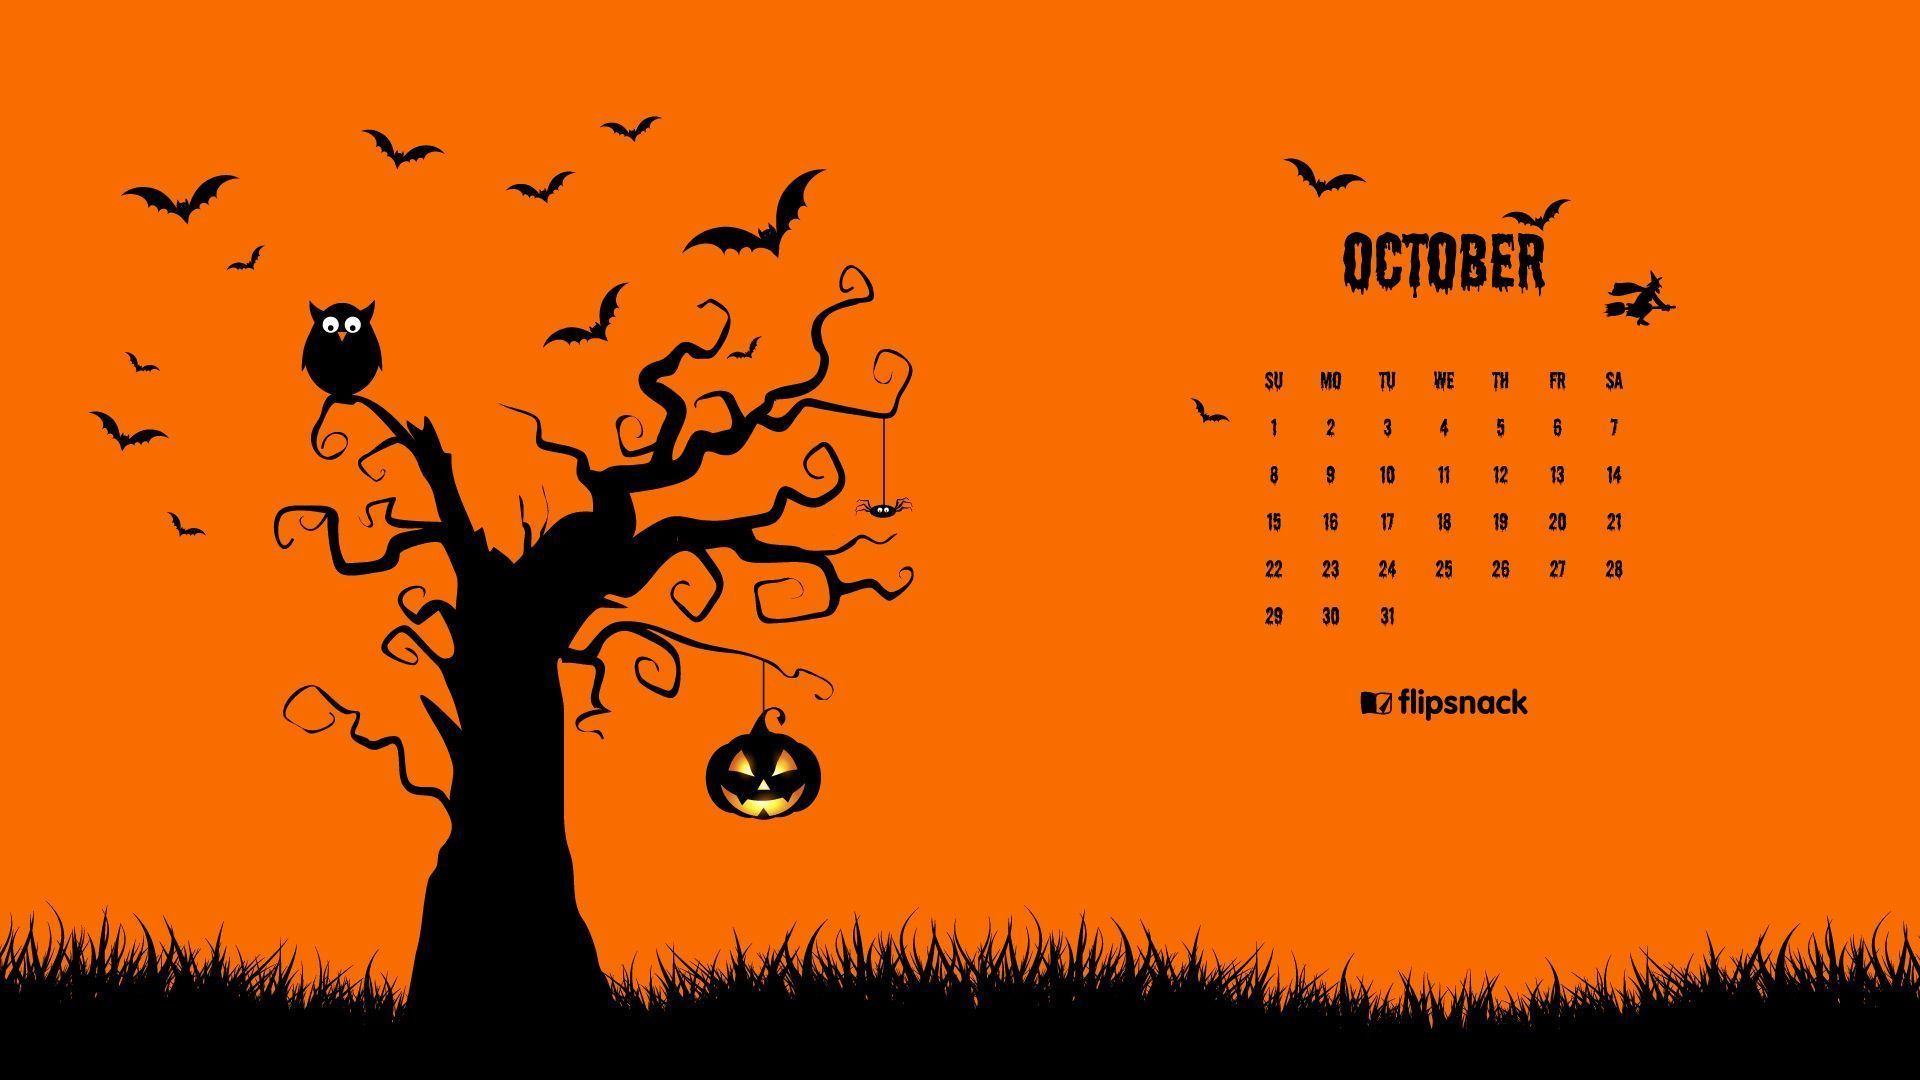 October 2017 calendar wallpaper #octoberwallpaper Wallpaper Calendar October 2017 #octoberwallpaper October 2017 calendar wallpaper #octoberwallpaper Wallpaper Calendar October 2017 #octoberwallpaper October 2017 calendar wallpaper #octoberwallpaper Wallpaper Calendar October 2017 #octoberwallpaper October 2017 calendar wallpaper #octoberwallpaper Wallpaper Calendar October 2017 #octoberwallpaper